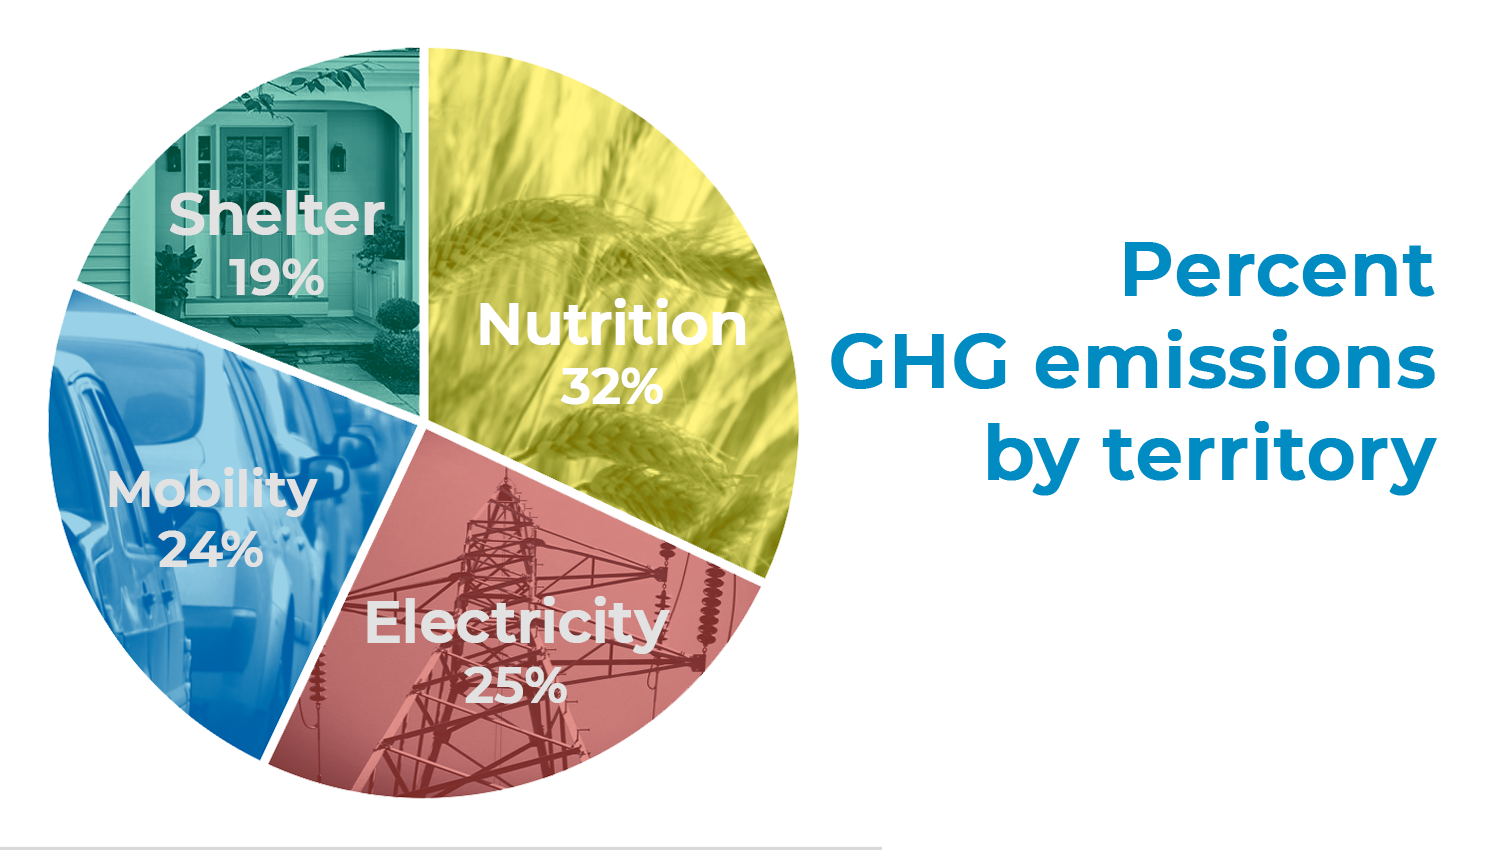 OUR&D's funding territories. Percentages are amount of greenhouse gases emitted for each category.